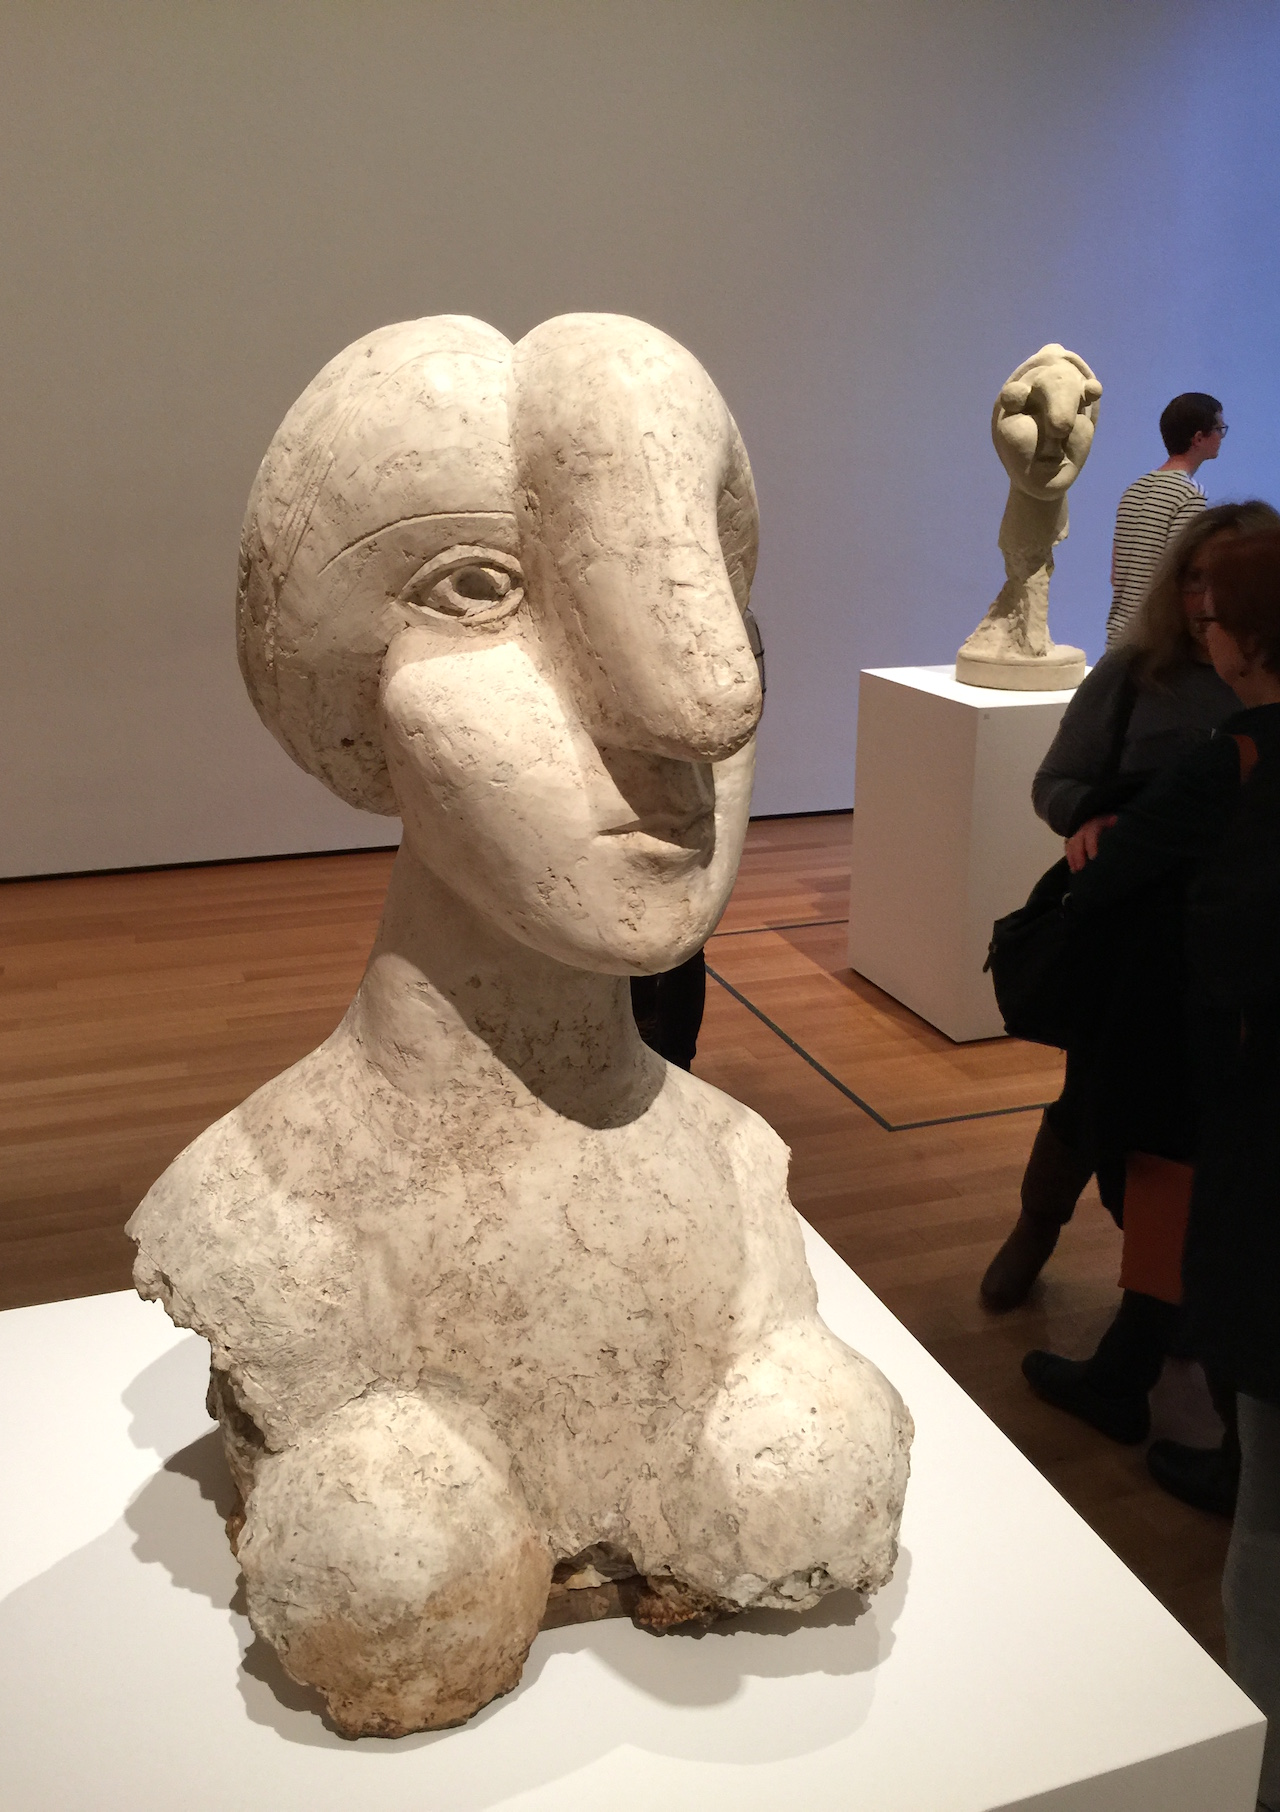 """Pablo Picasso's """"Bust of a Woman"""" (1931) is the subject of an ongoing lawsuit. (photo by Hrag Vartanian for Hyperallergic)"""